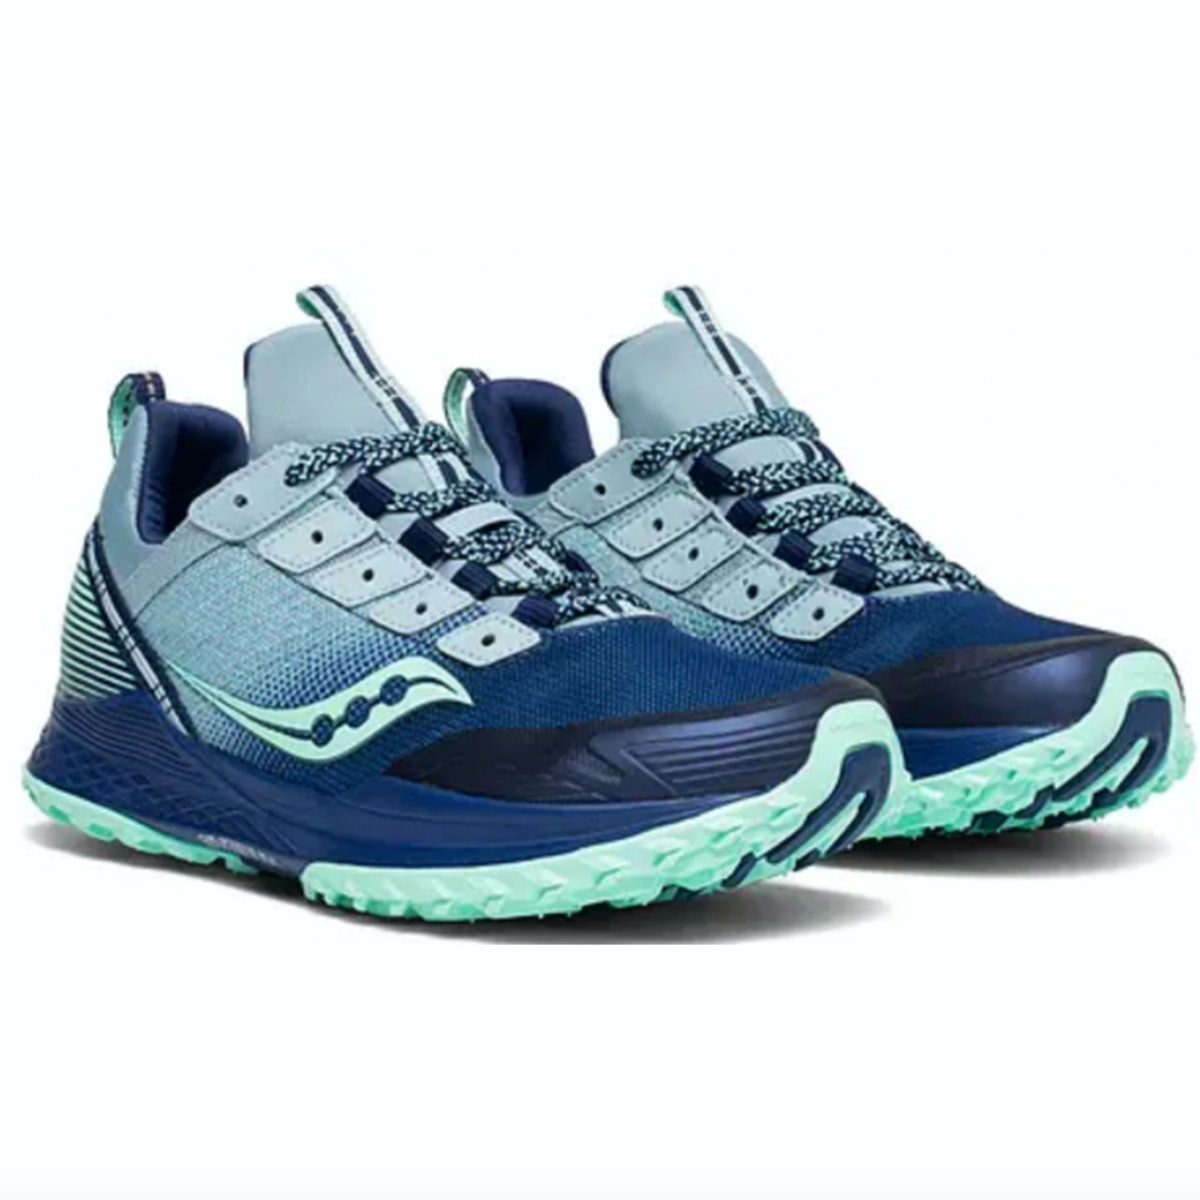 Women's Mad River TR in Blue/Navy